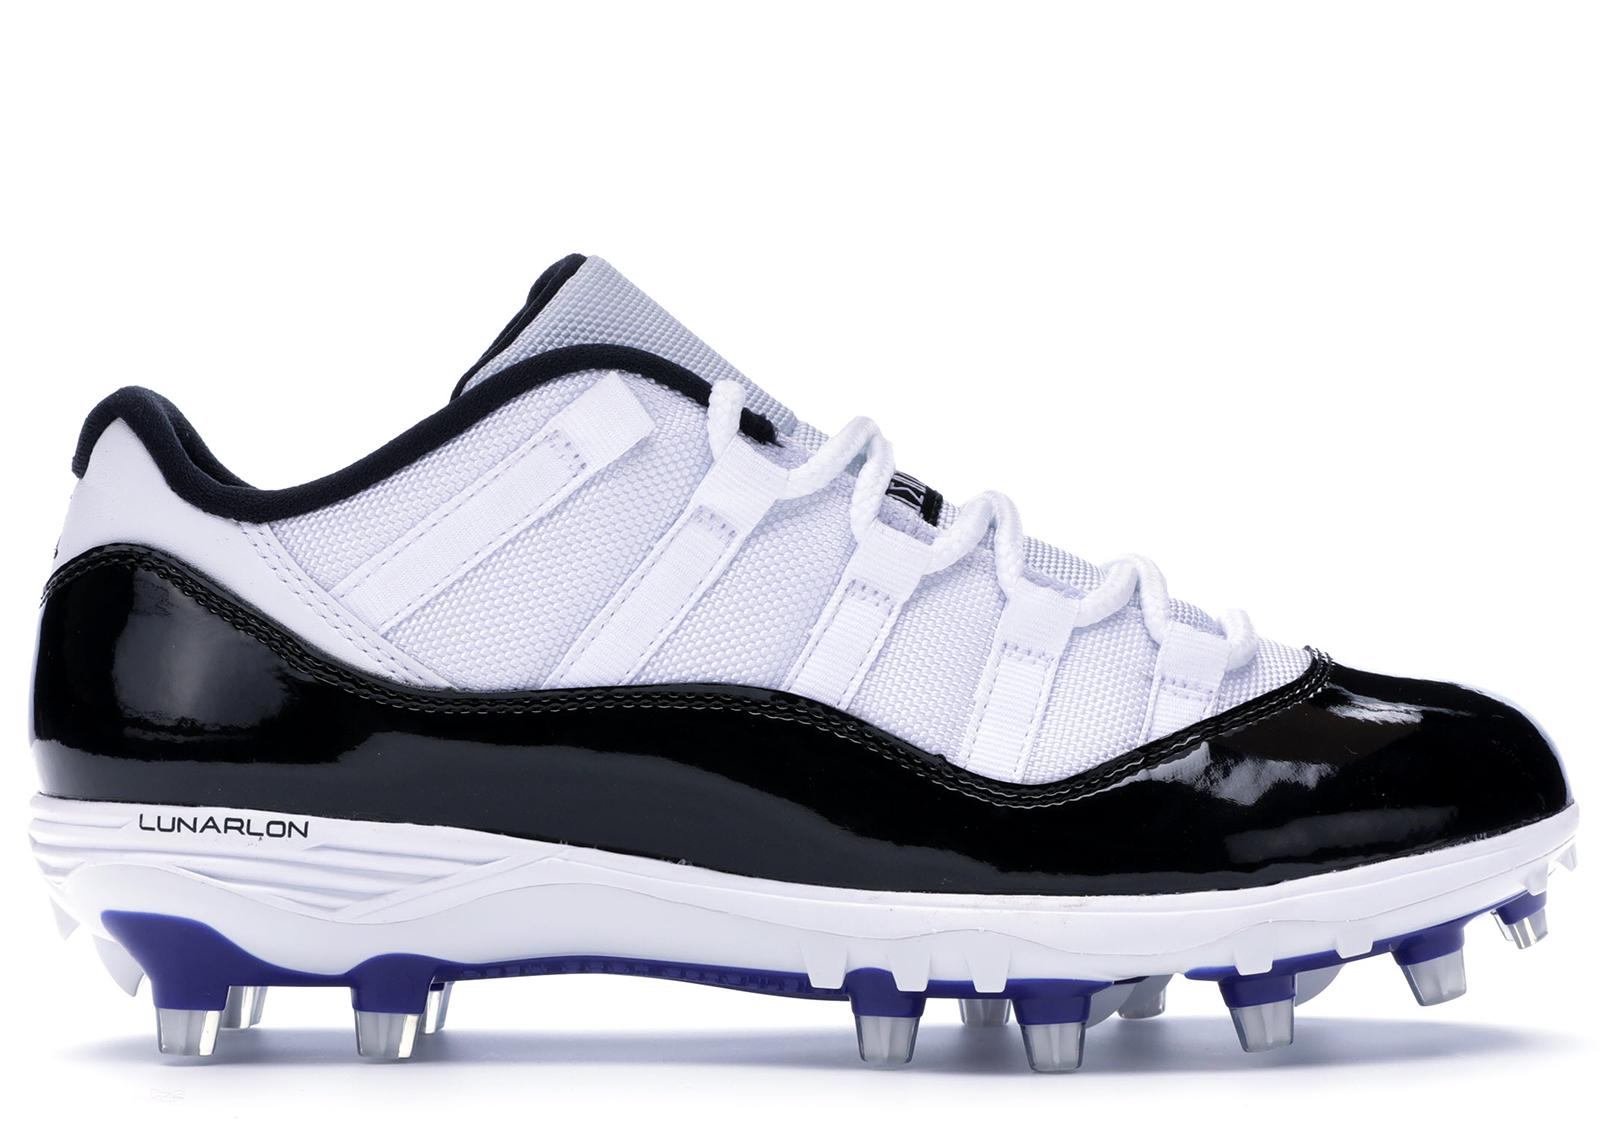 6fc51a37 Lyst - Nike 11 Retro Low Cleat Concord in White for Men